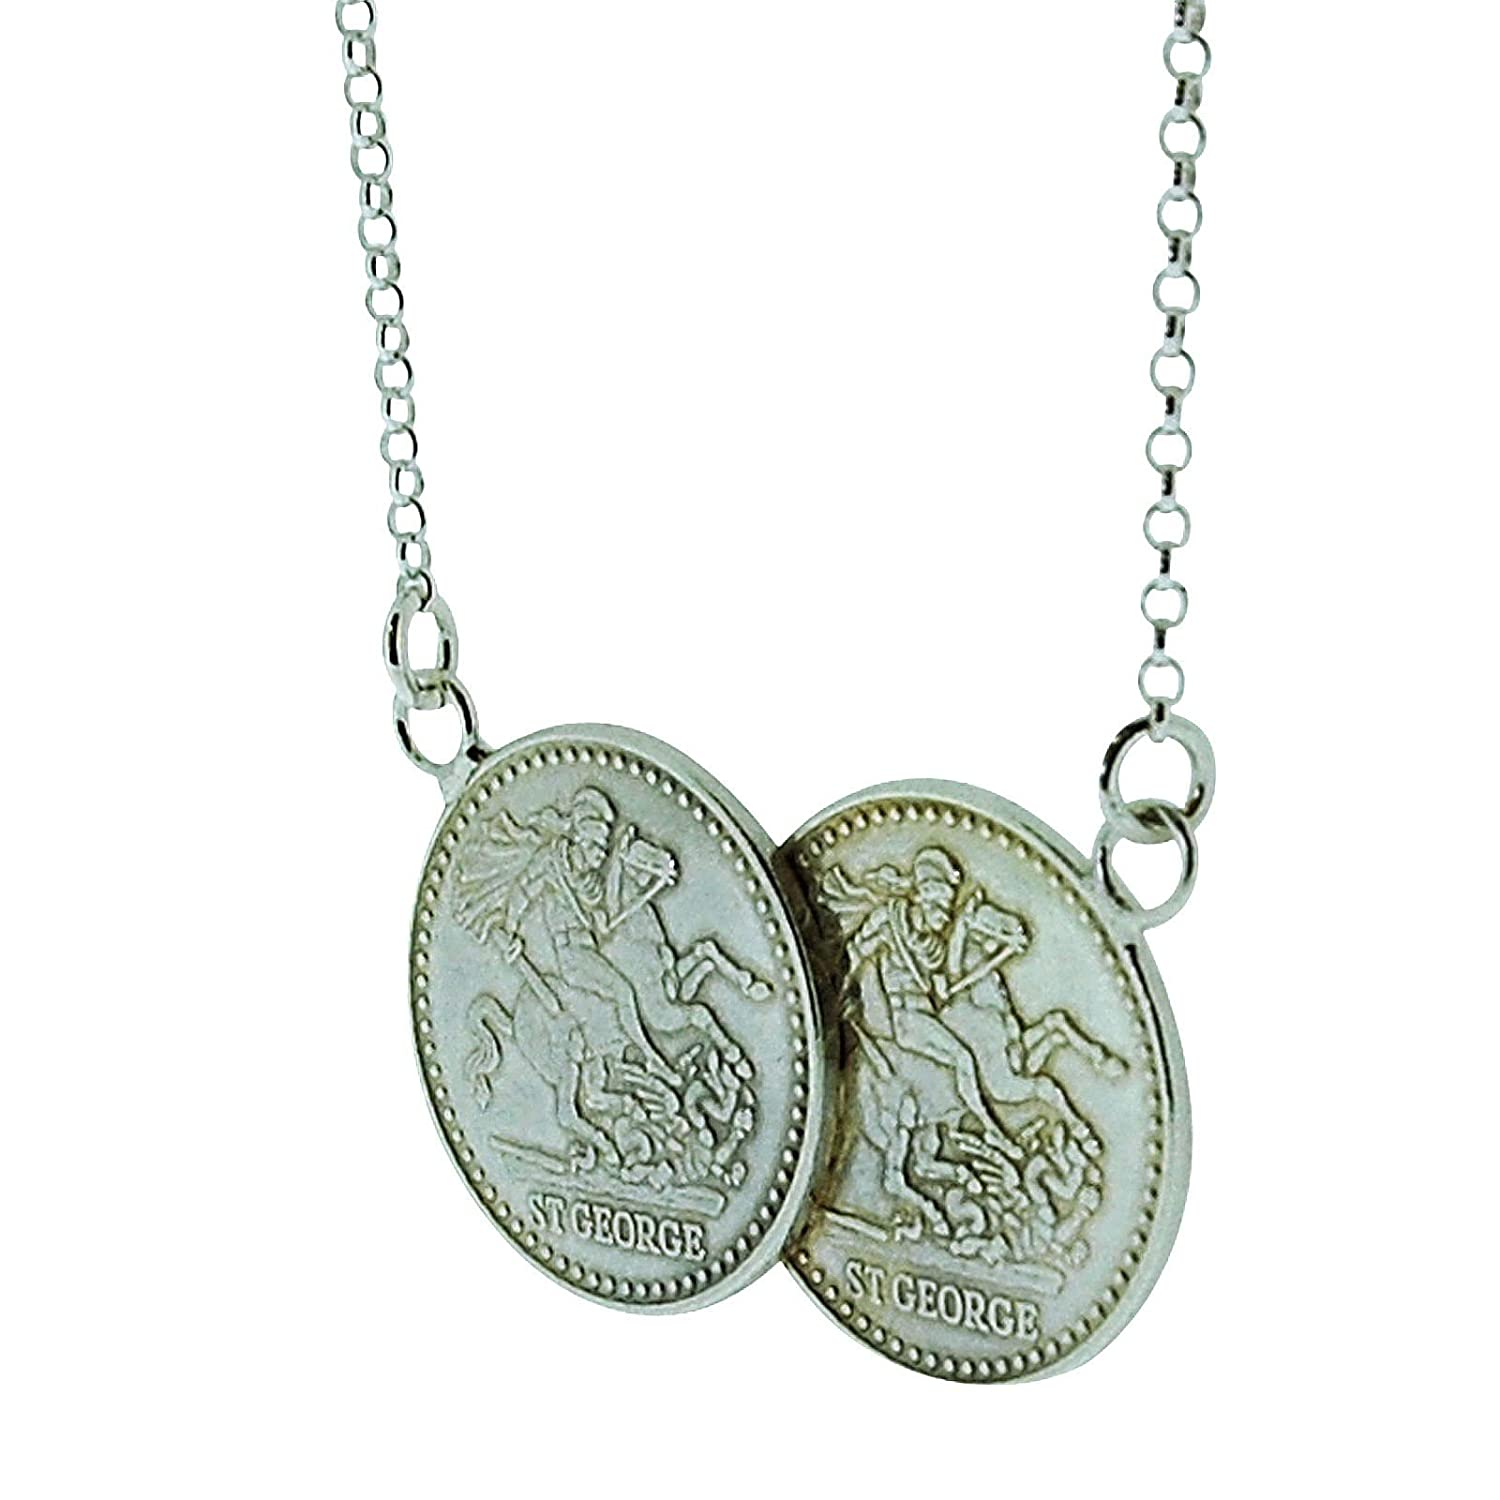 TOC Sterling Silver St George Half Sovereign Double Coin Necklace 17